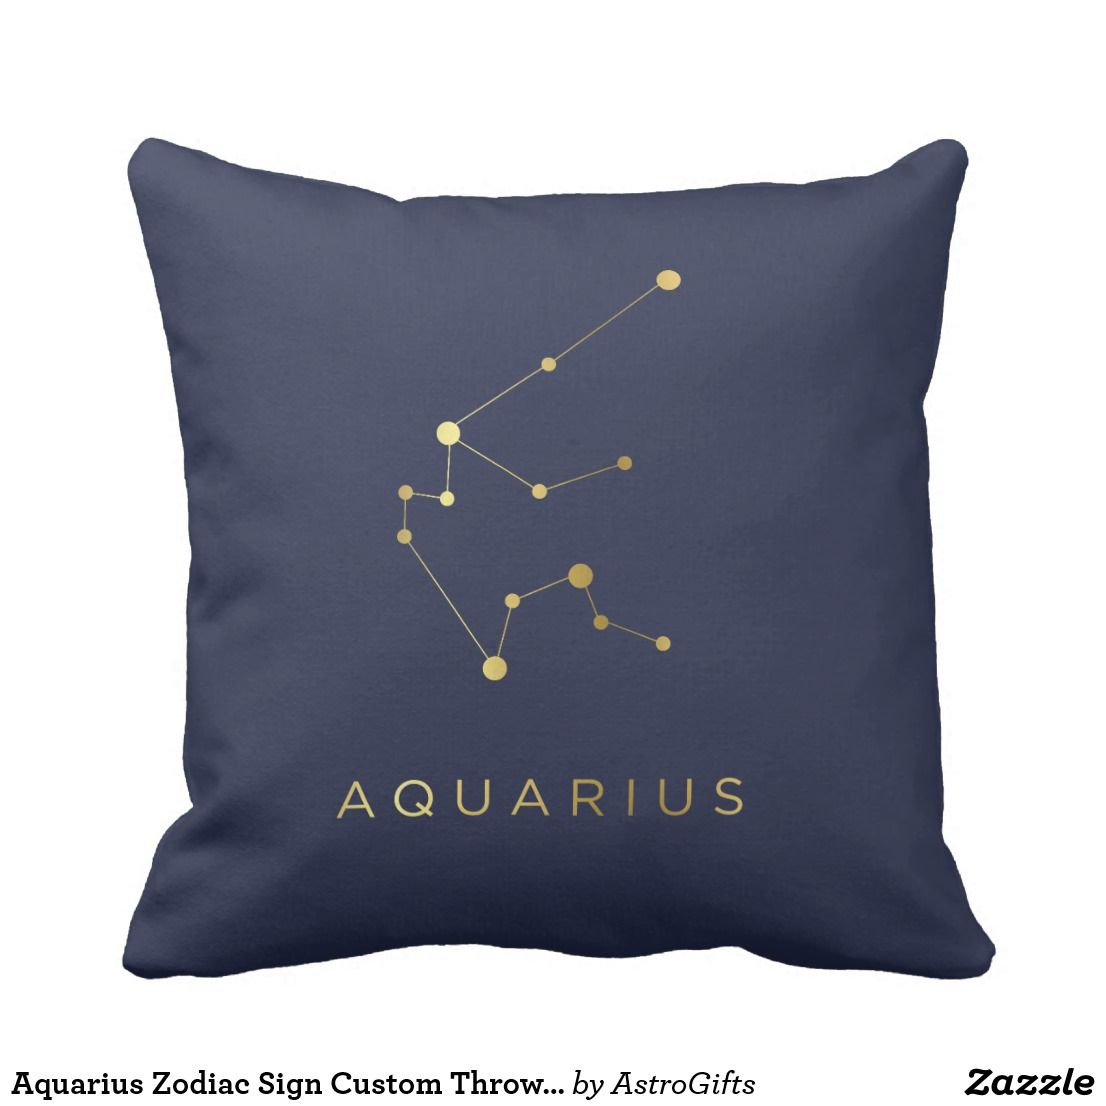 Aquarius Zodiac Sign Custom Throw Pillow Decor